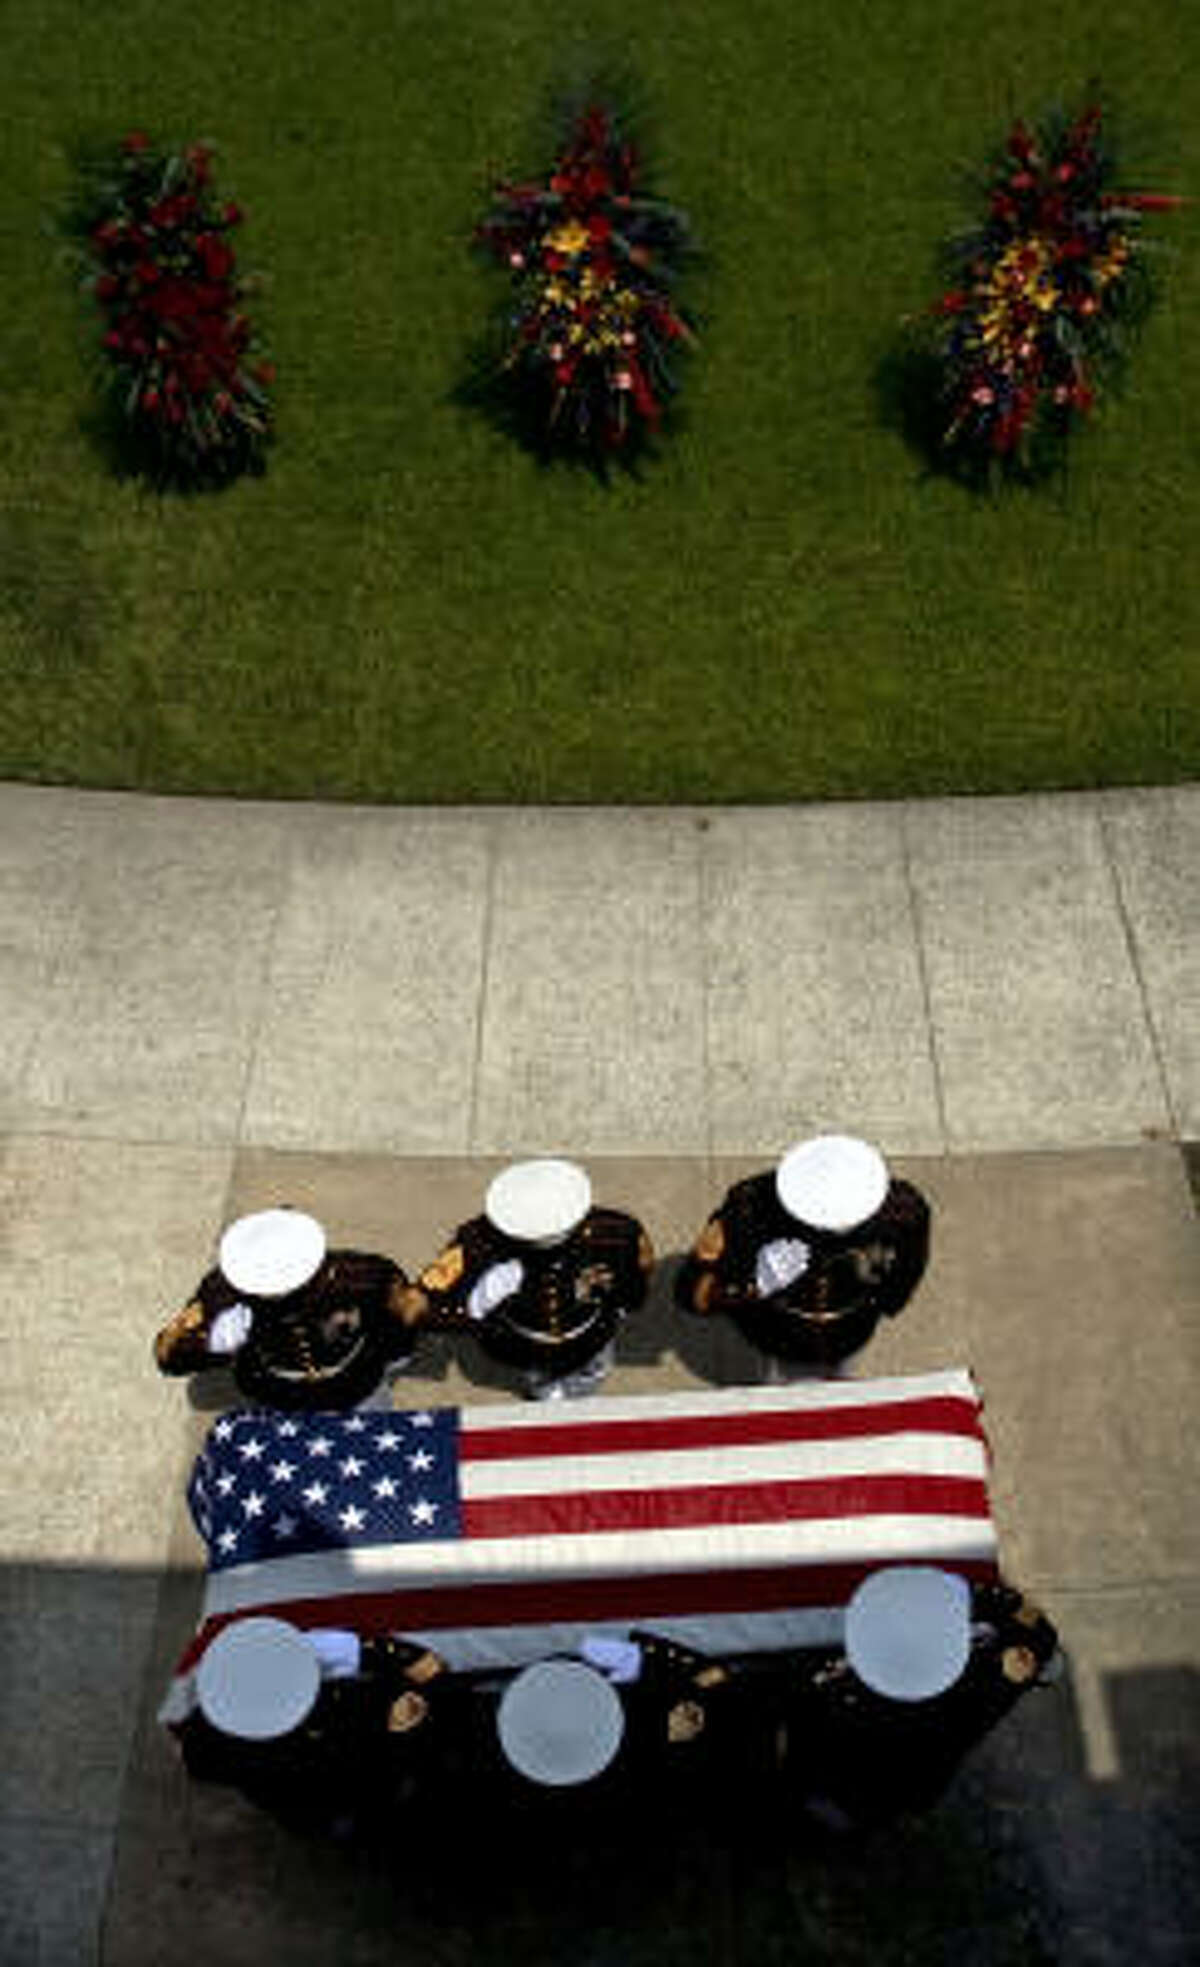 Marine Corps Color guard salutes the casket. Lance Cpl. Martin, with the 1st Light Armored Reconnaissance Battalion based in Camp Pendleton, died while on patrol in Helmand Province, Afghanistan.